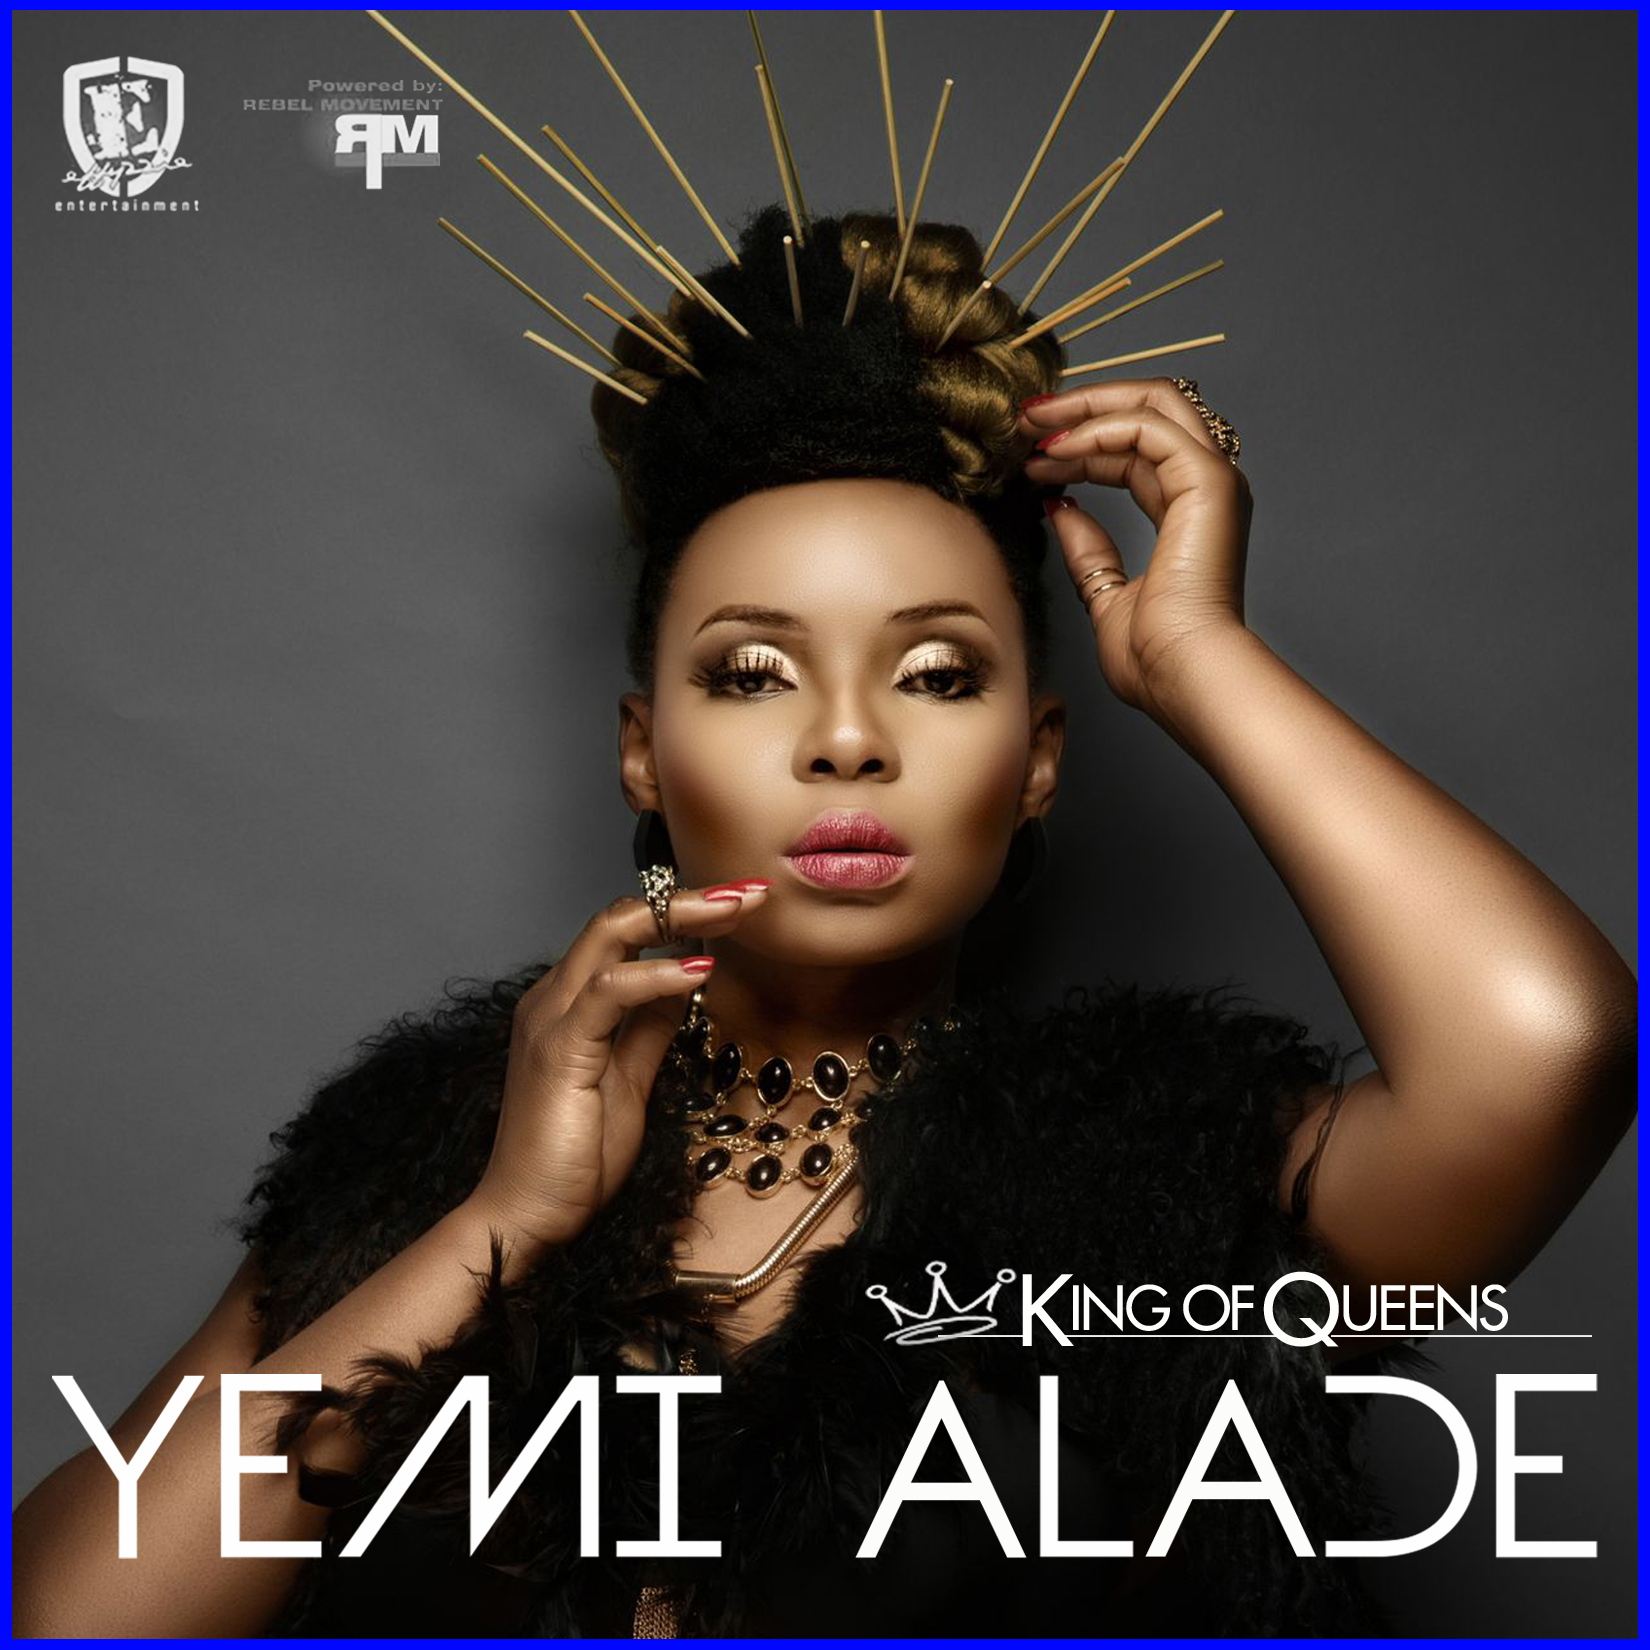 Yemi-Alade-King-Of-Queens-Album-Art-Front-2.jpg